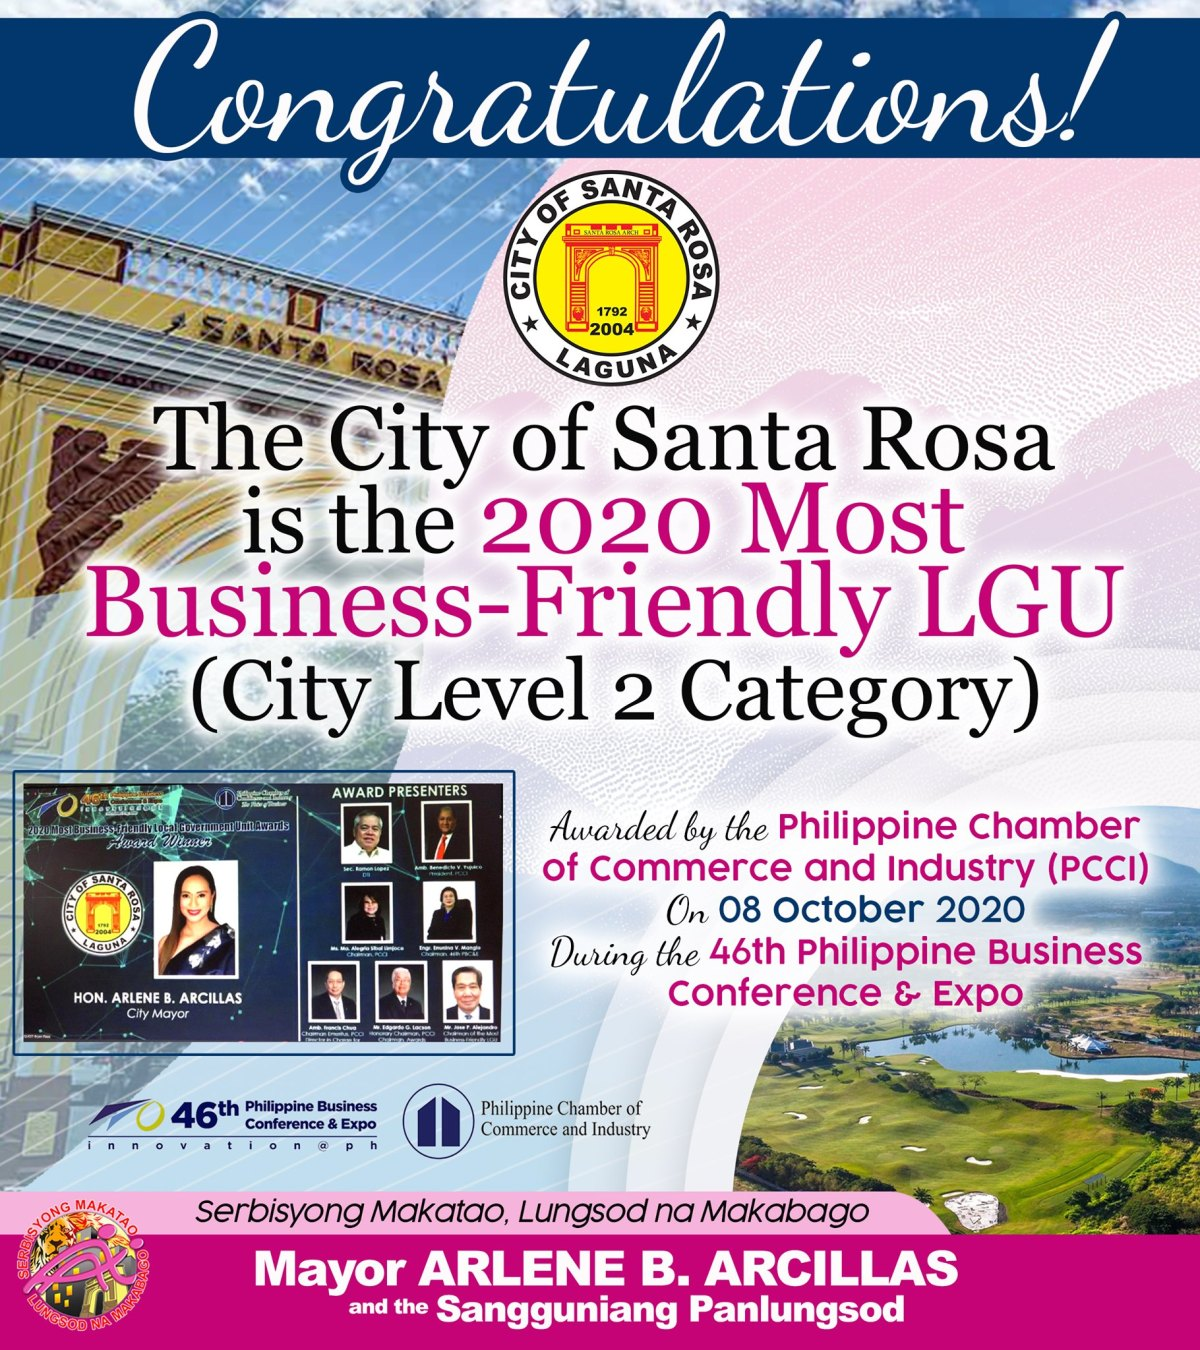 2020 Most Business-Friendly Local Government Unit (LGU) and COVID 19: City of Santa Rosa, Philippines